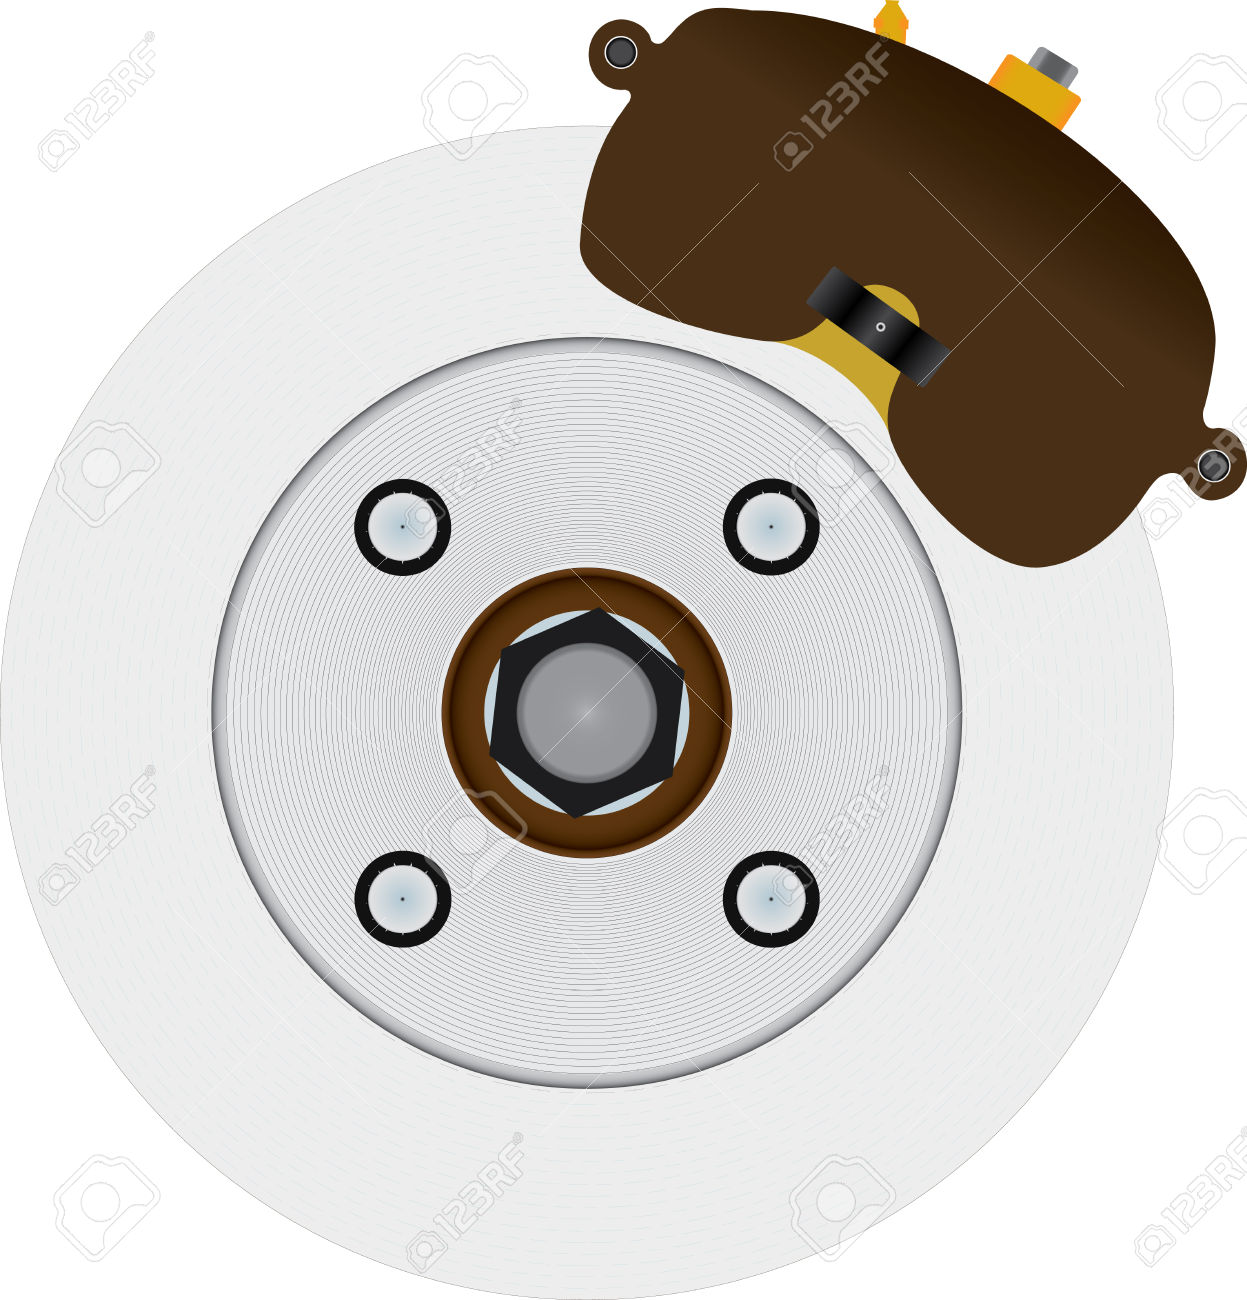 61 Disc Brake Rotors Stock Vector Illustration And Royalty Free.